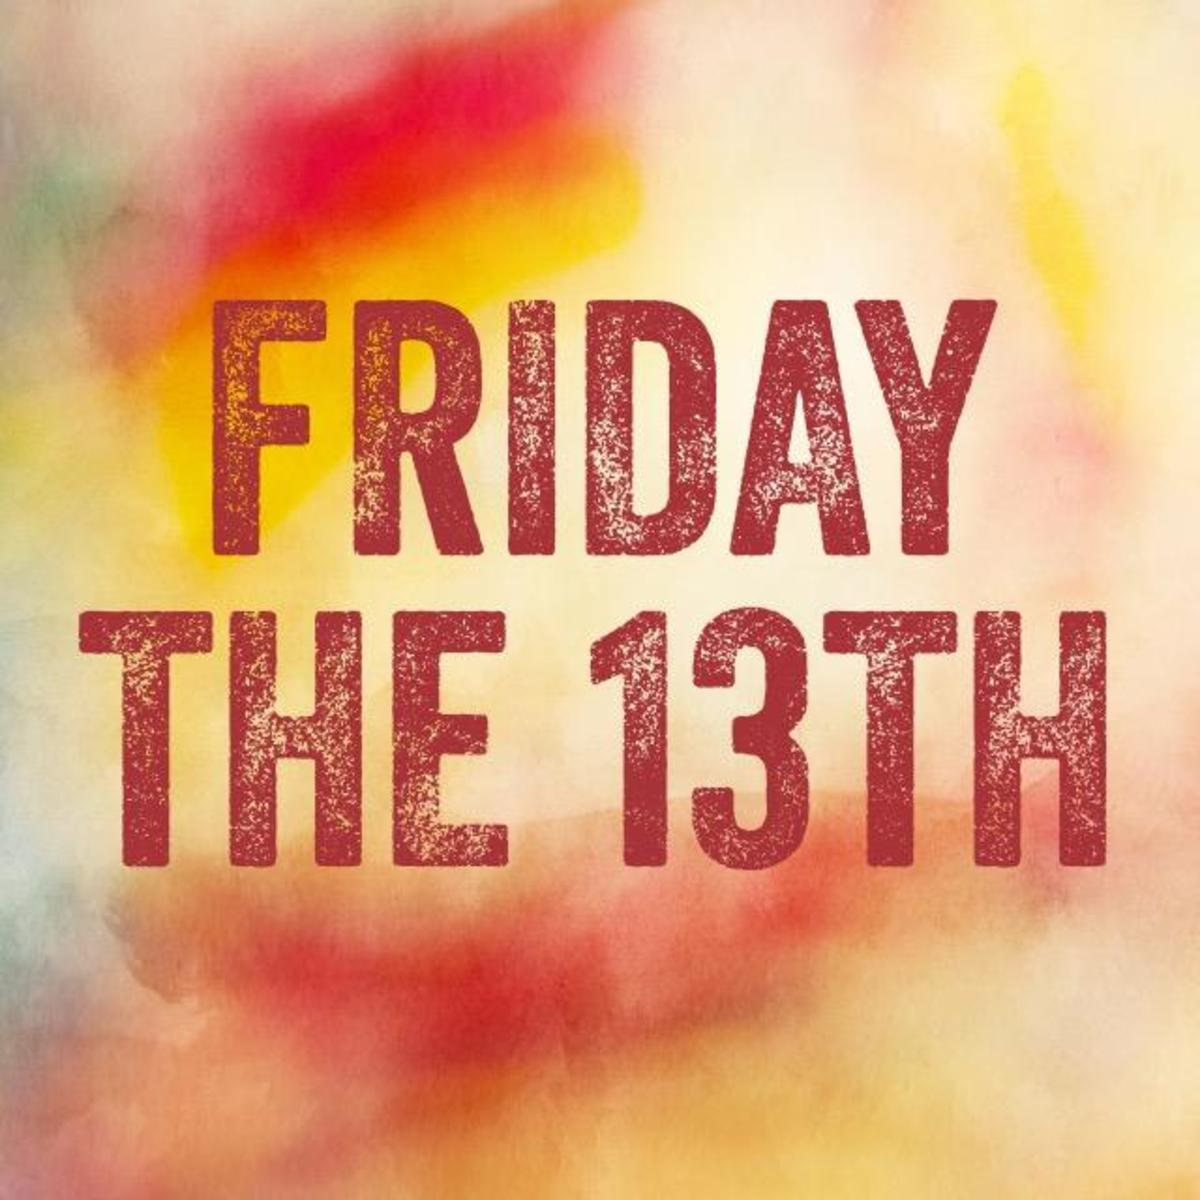 Superstition about Friday the 13th